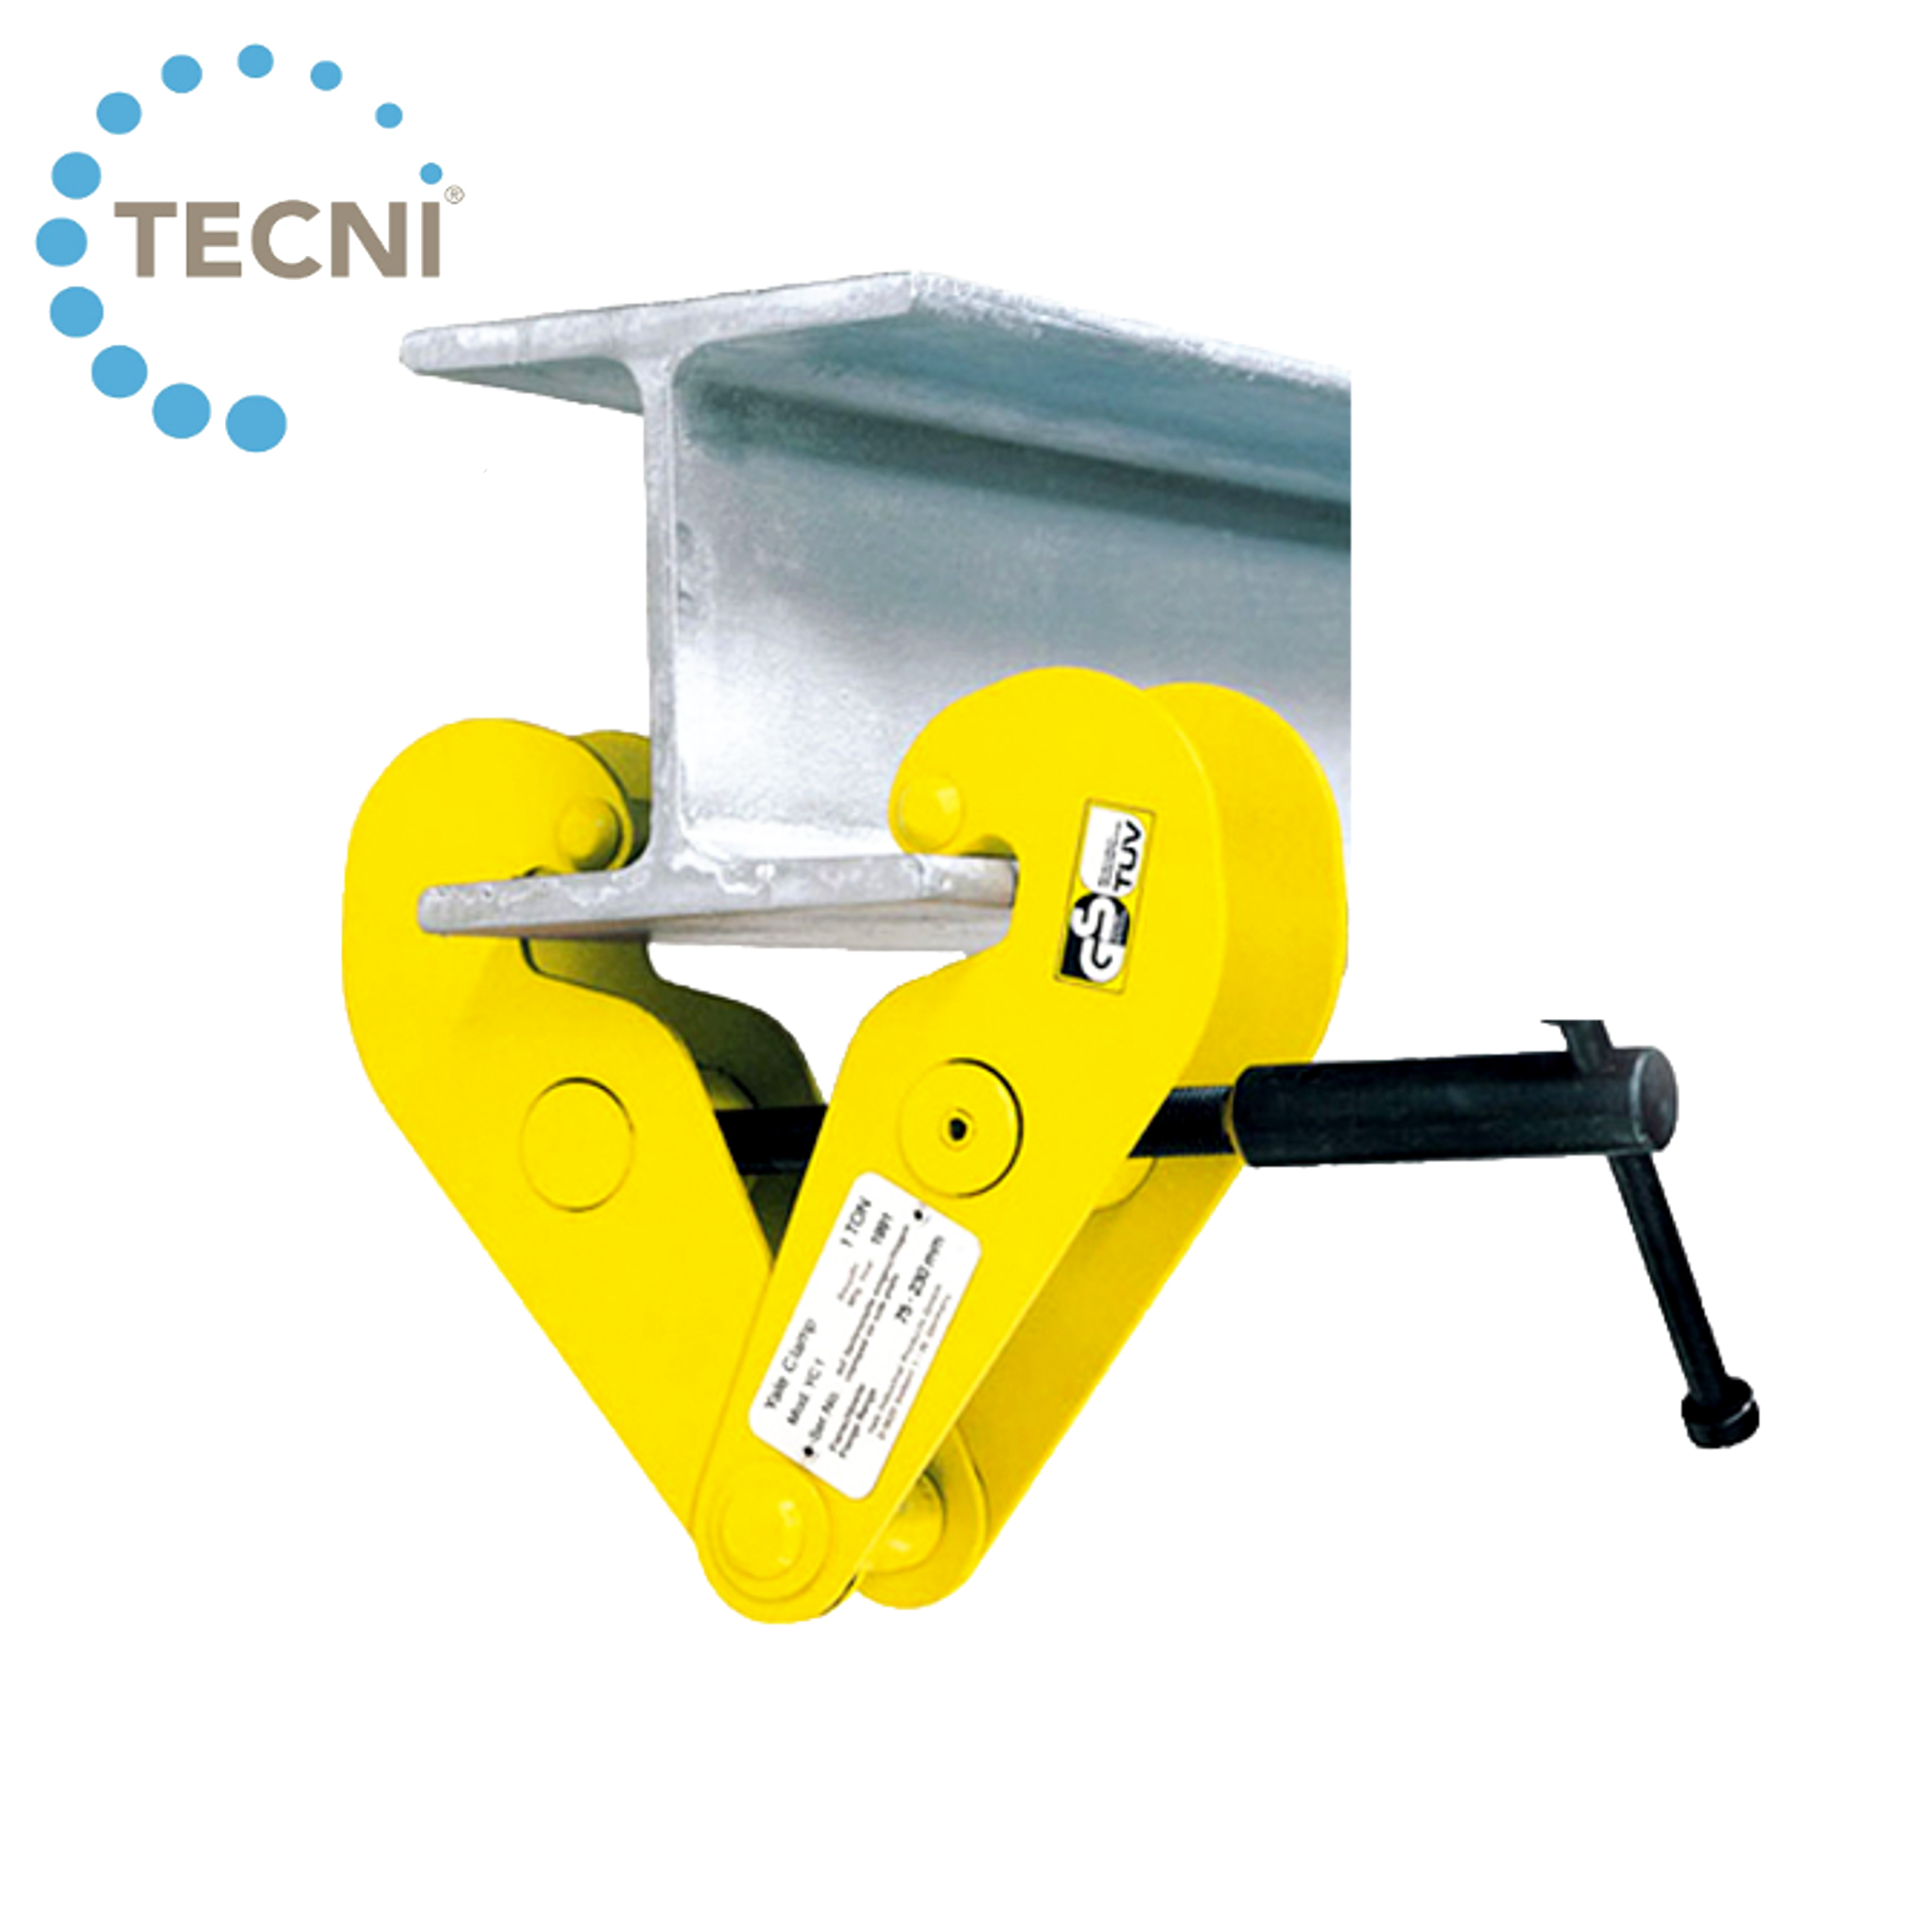 Yale YC-10 Beam Clamp from TECNI uk